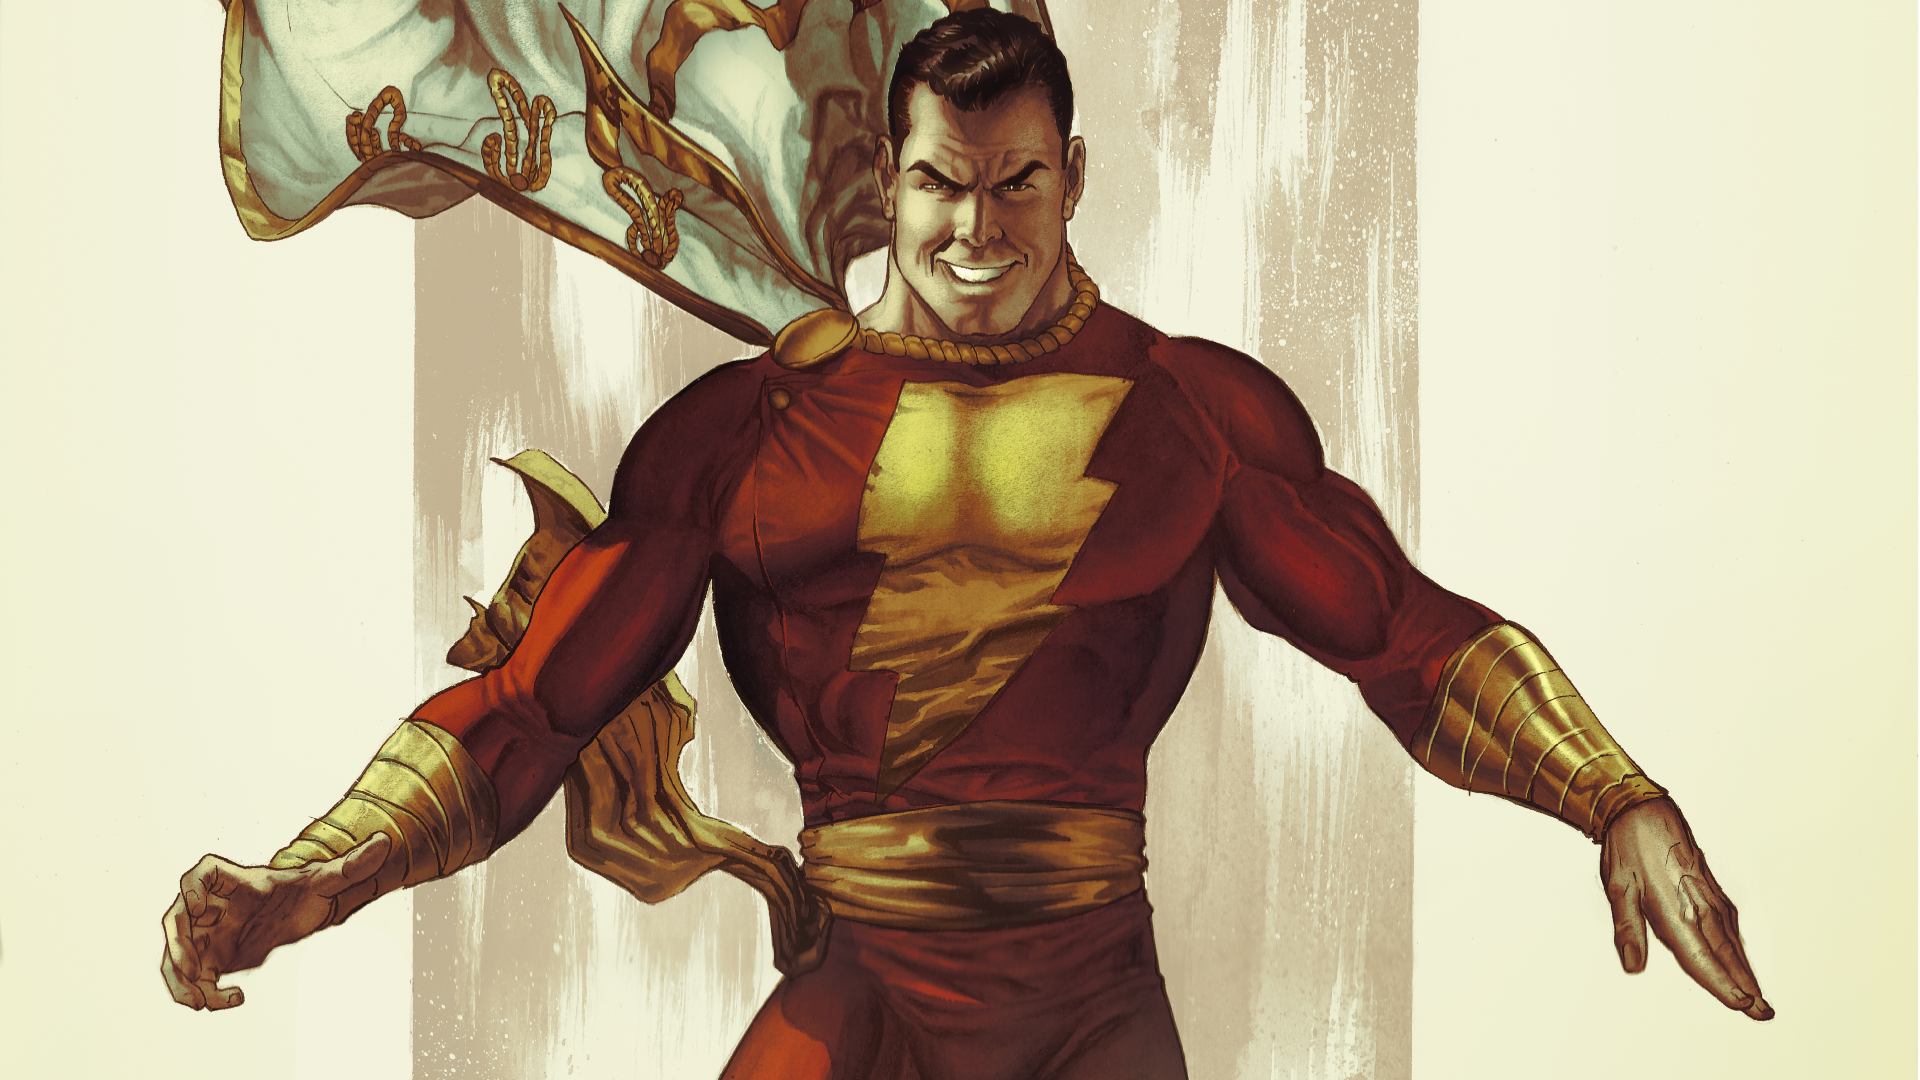 Top 20 Most Powerful Overpowered DC Characters 12 Captain Marvel Shazam